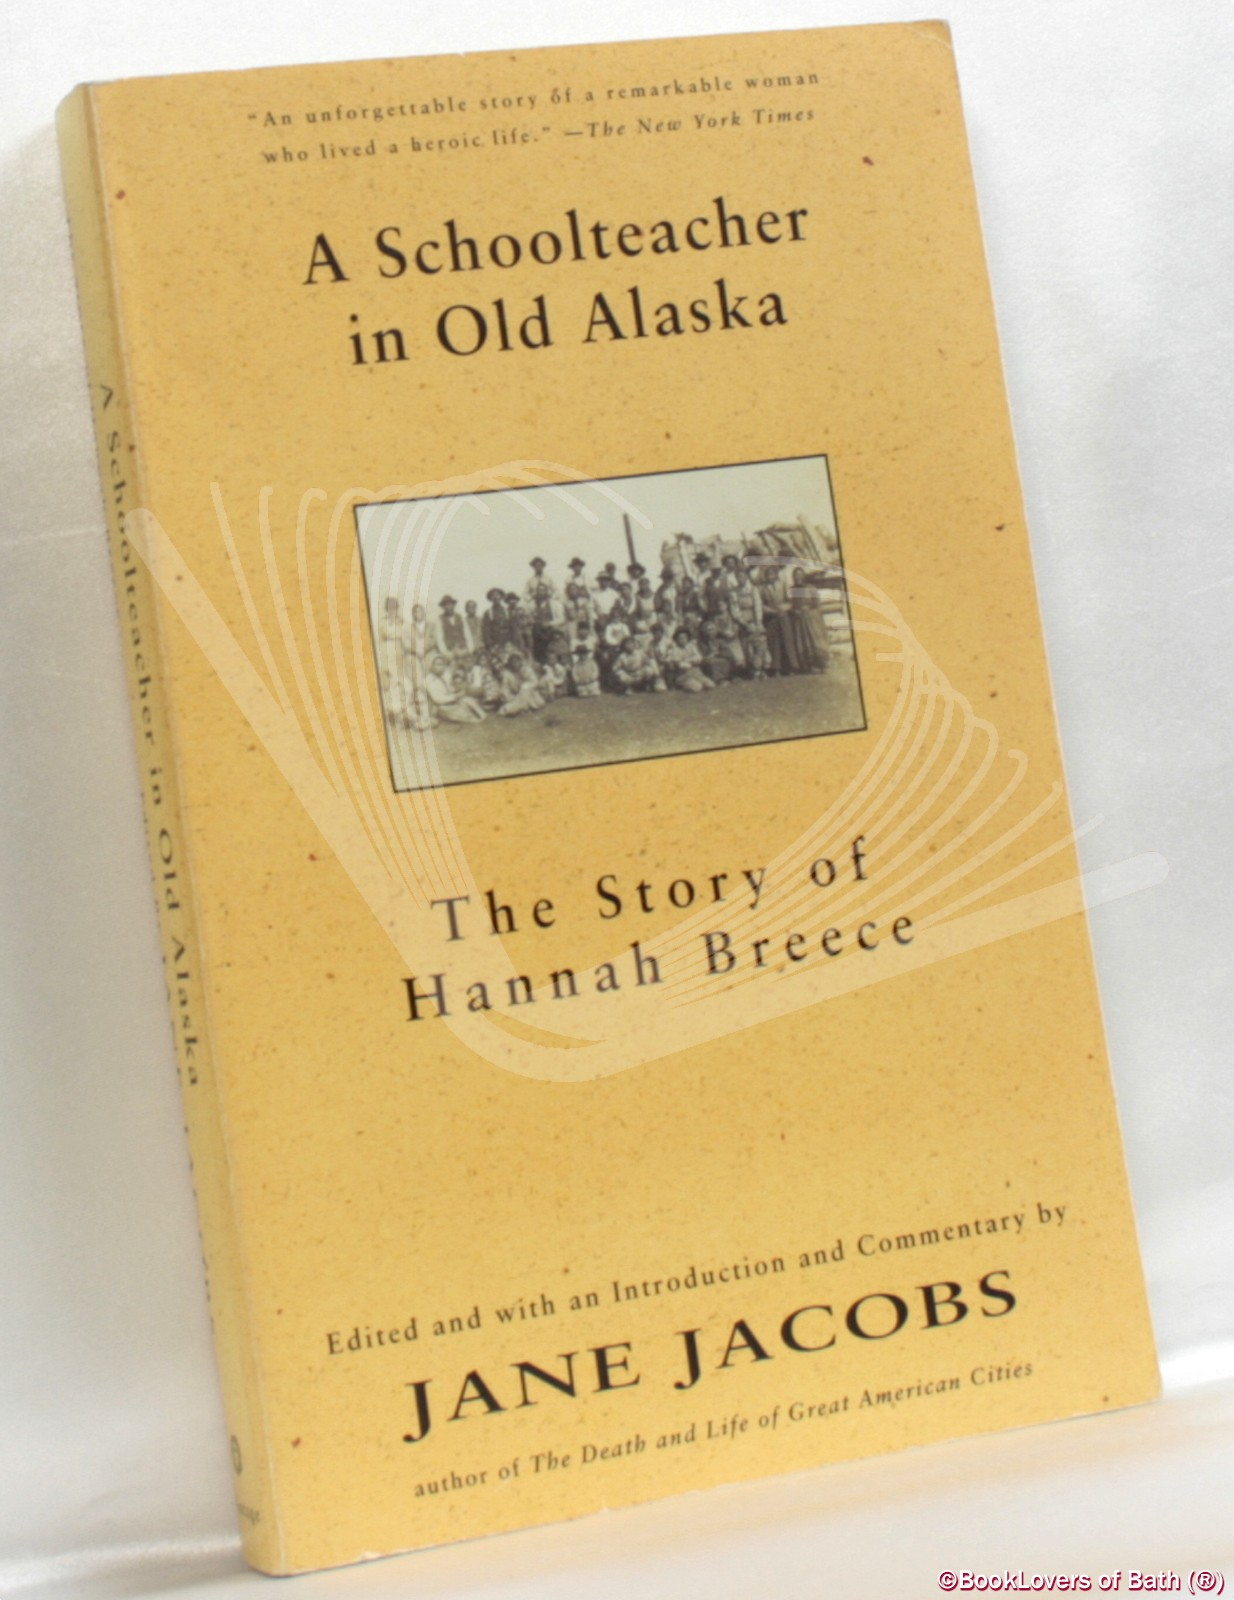 A Schoolteacher in Old Alaska: The Story of Hannah Breece - Edited by Jane Jacobs